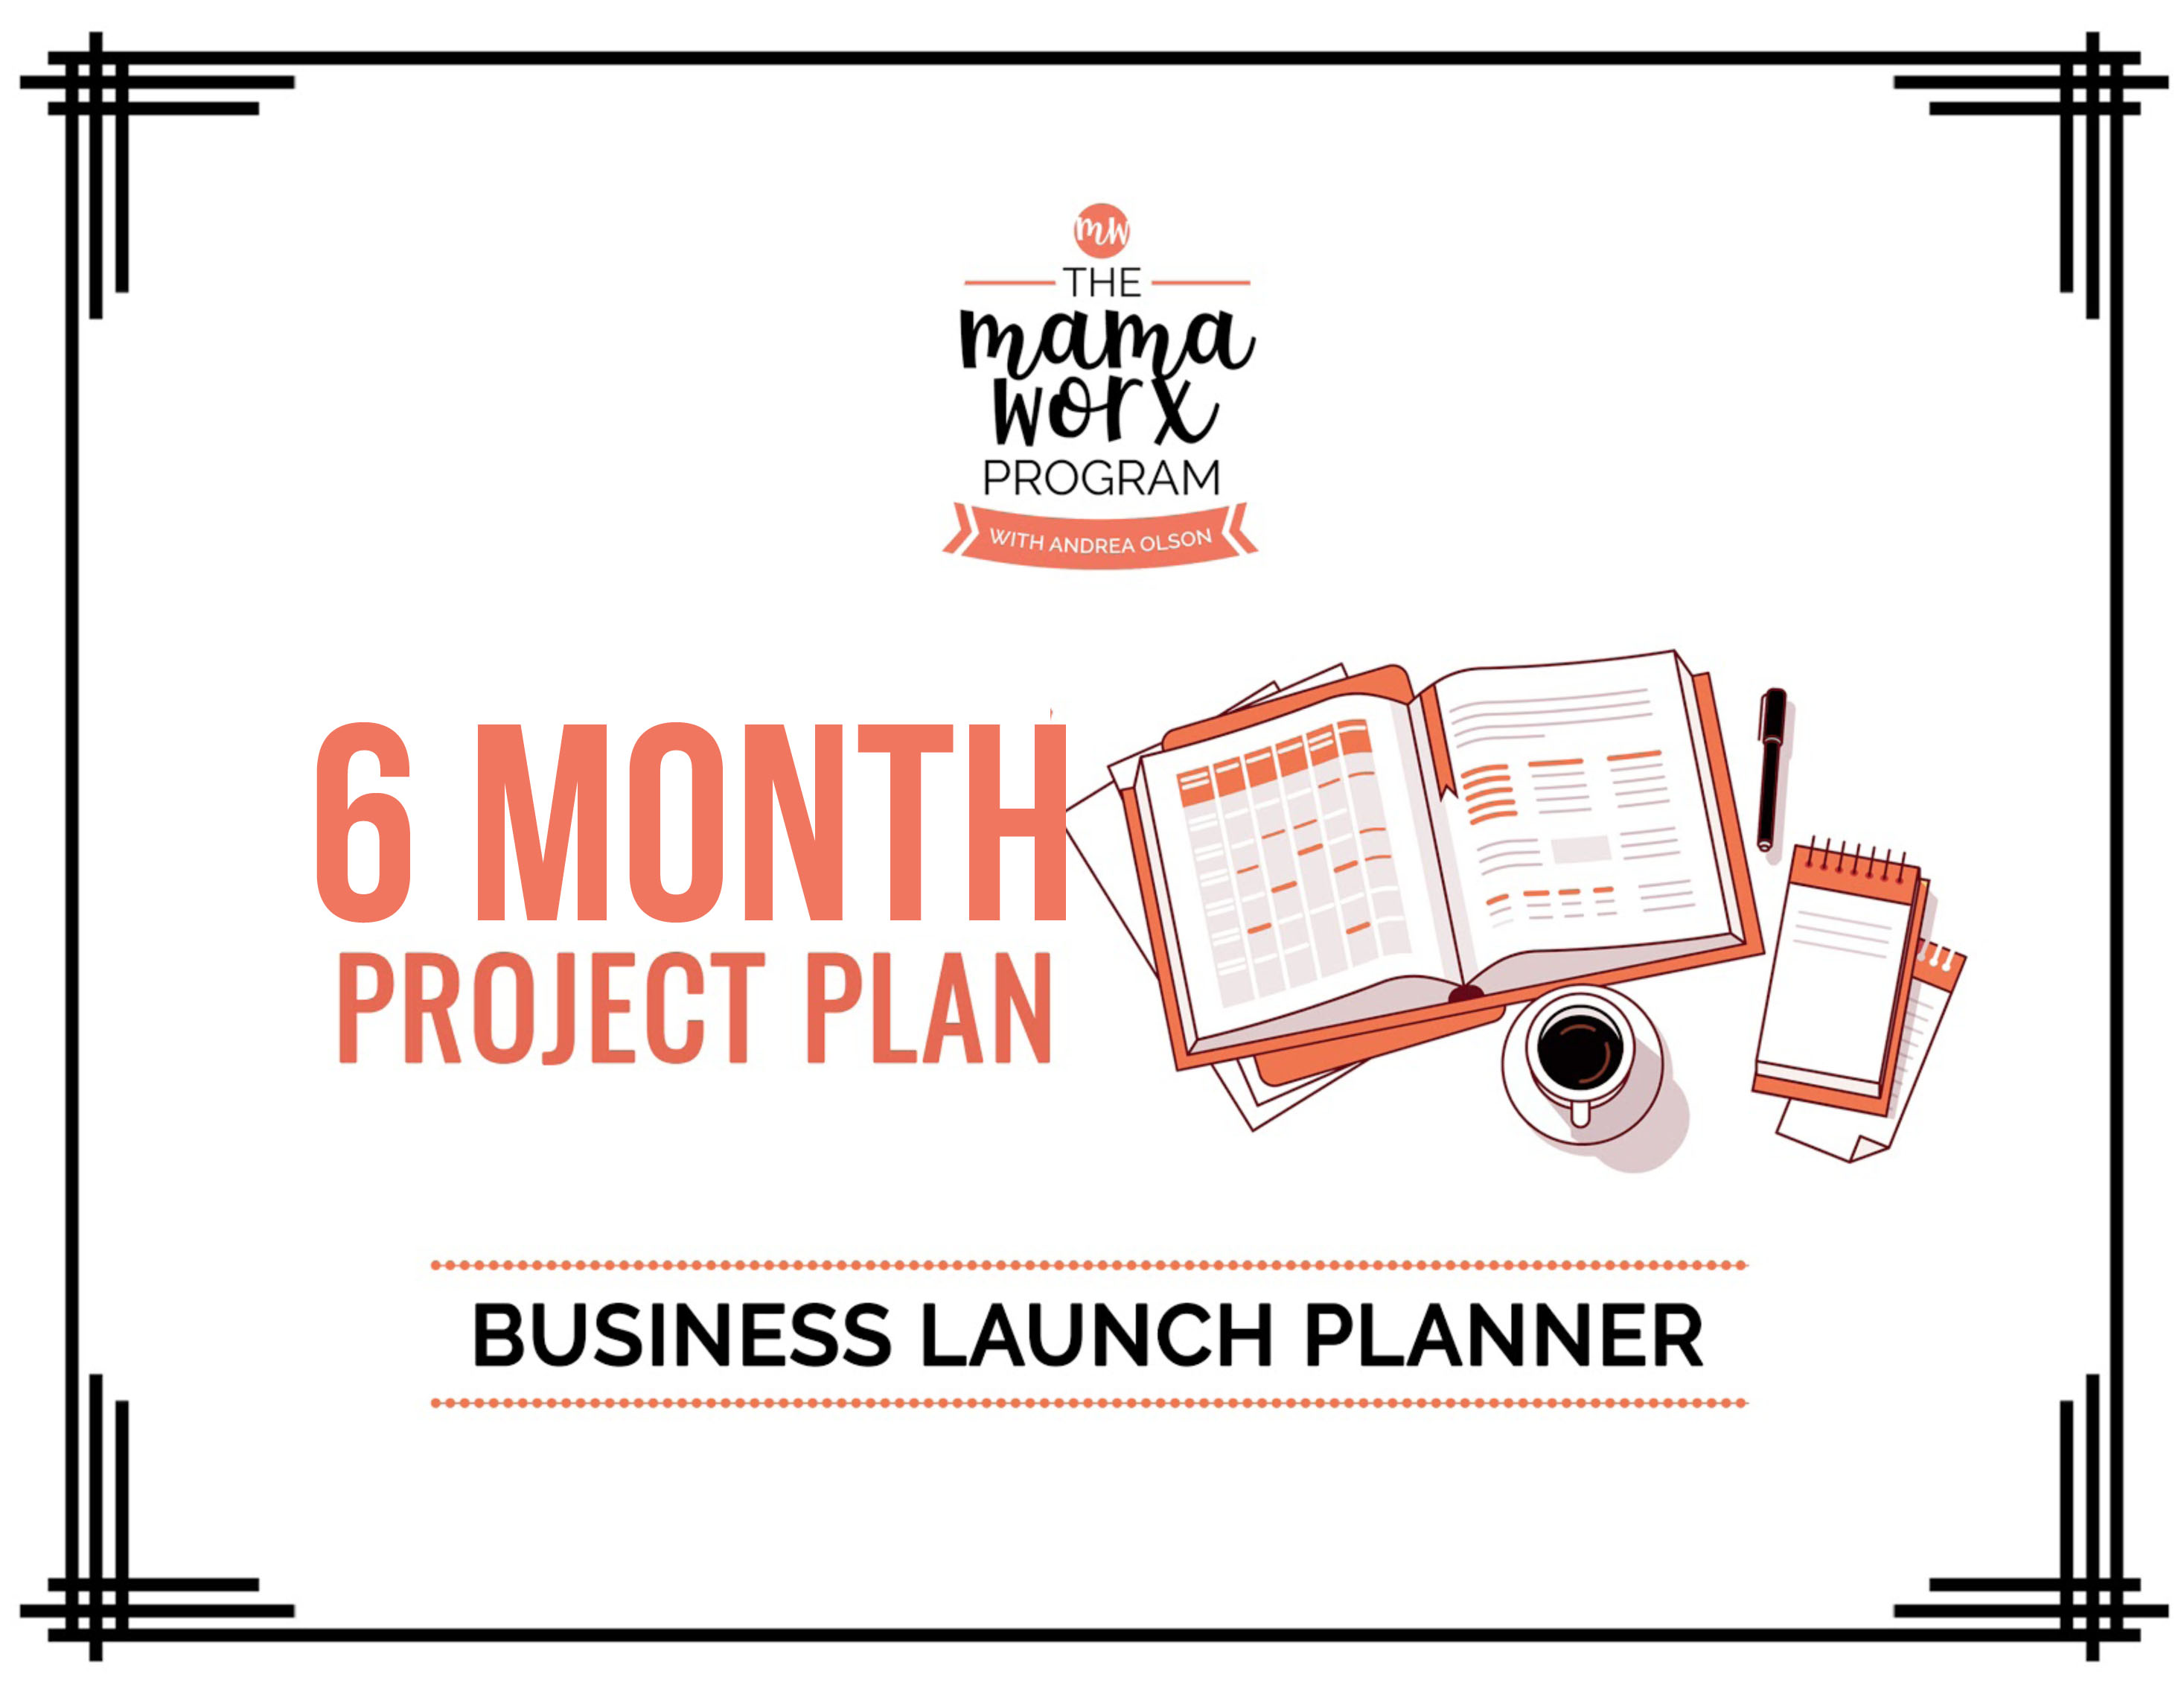 6 month business launch planner